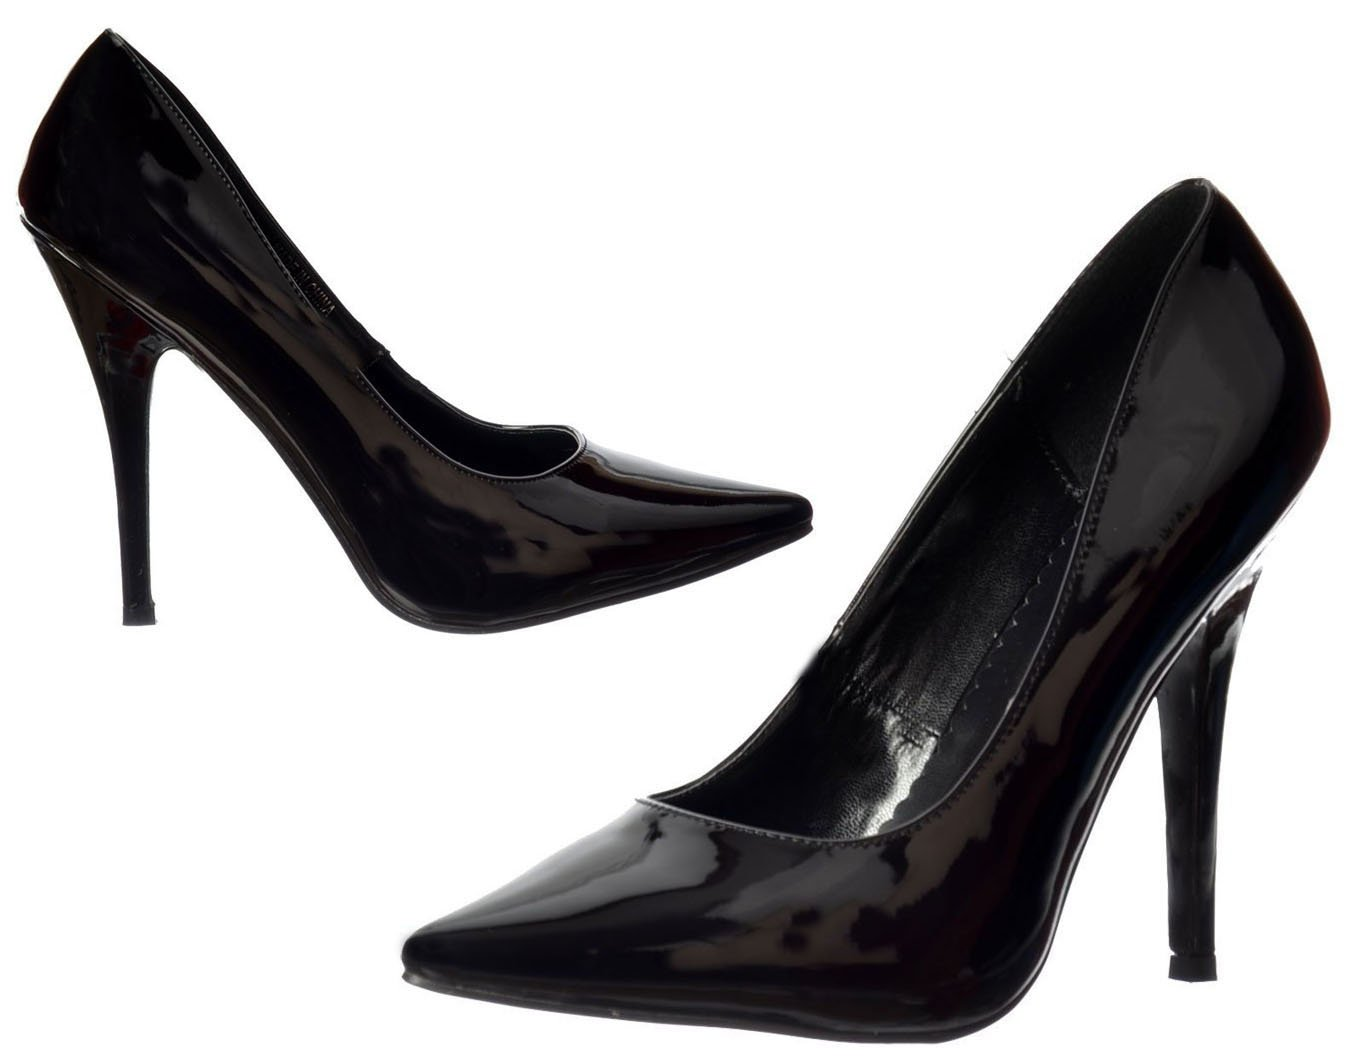 WOMENS MENS HIGH STILETTO HEEL FETISH GOING OUT COURT SHOES LARGE SIZES 3-12:  Amazon.co.uk: Shoes & Bags